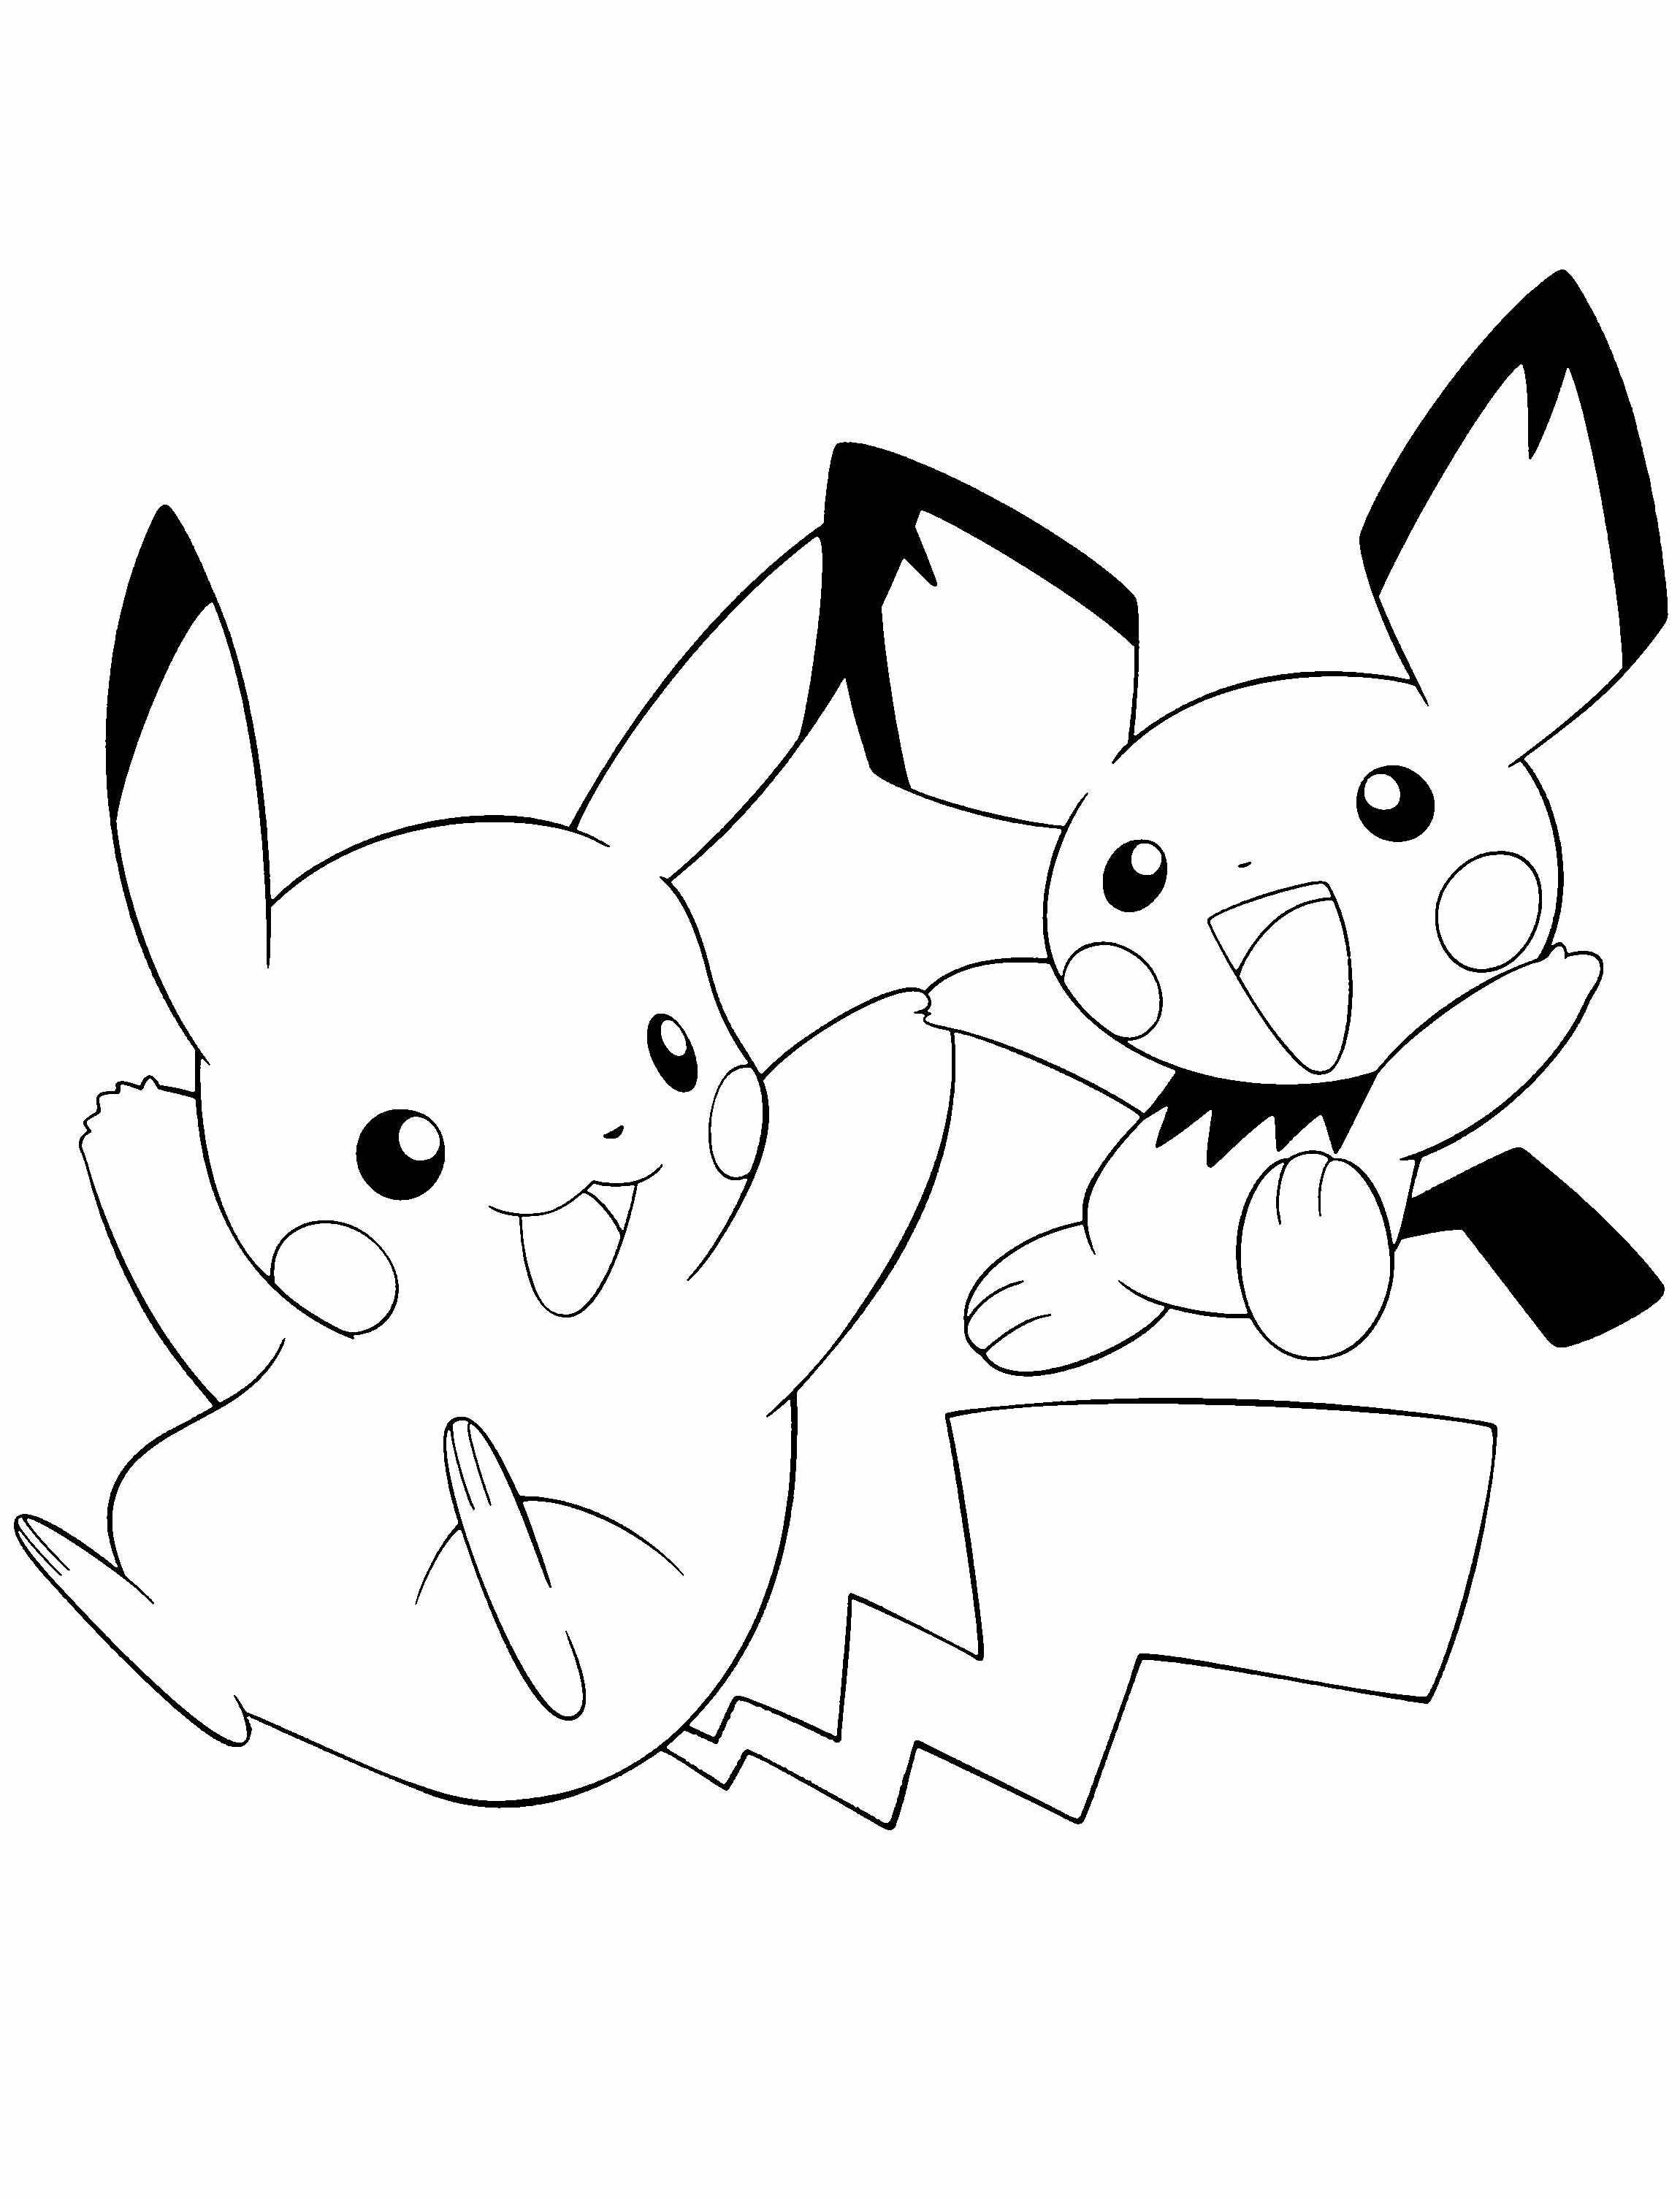 Kids Coloring Net Pikachu Coloring Page Pokemon Coloring Pages Pokemon Coloring